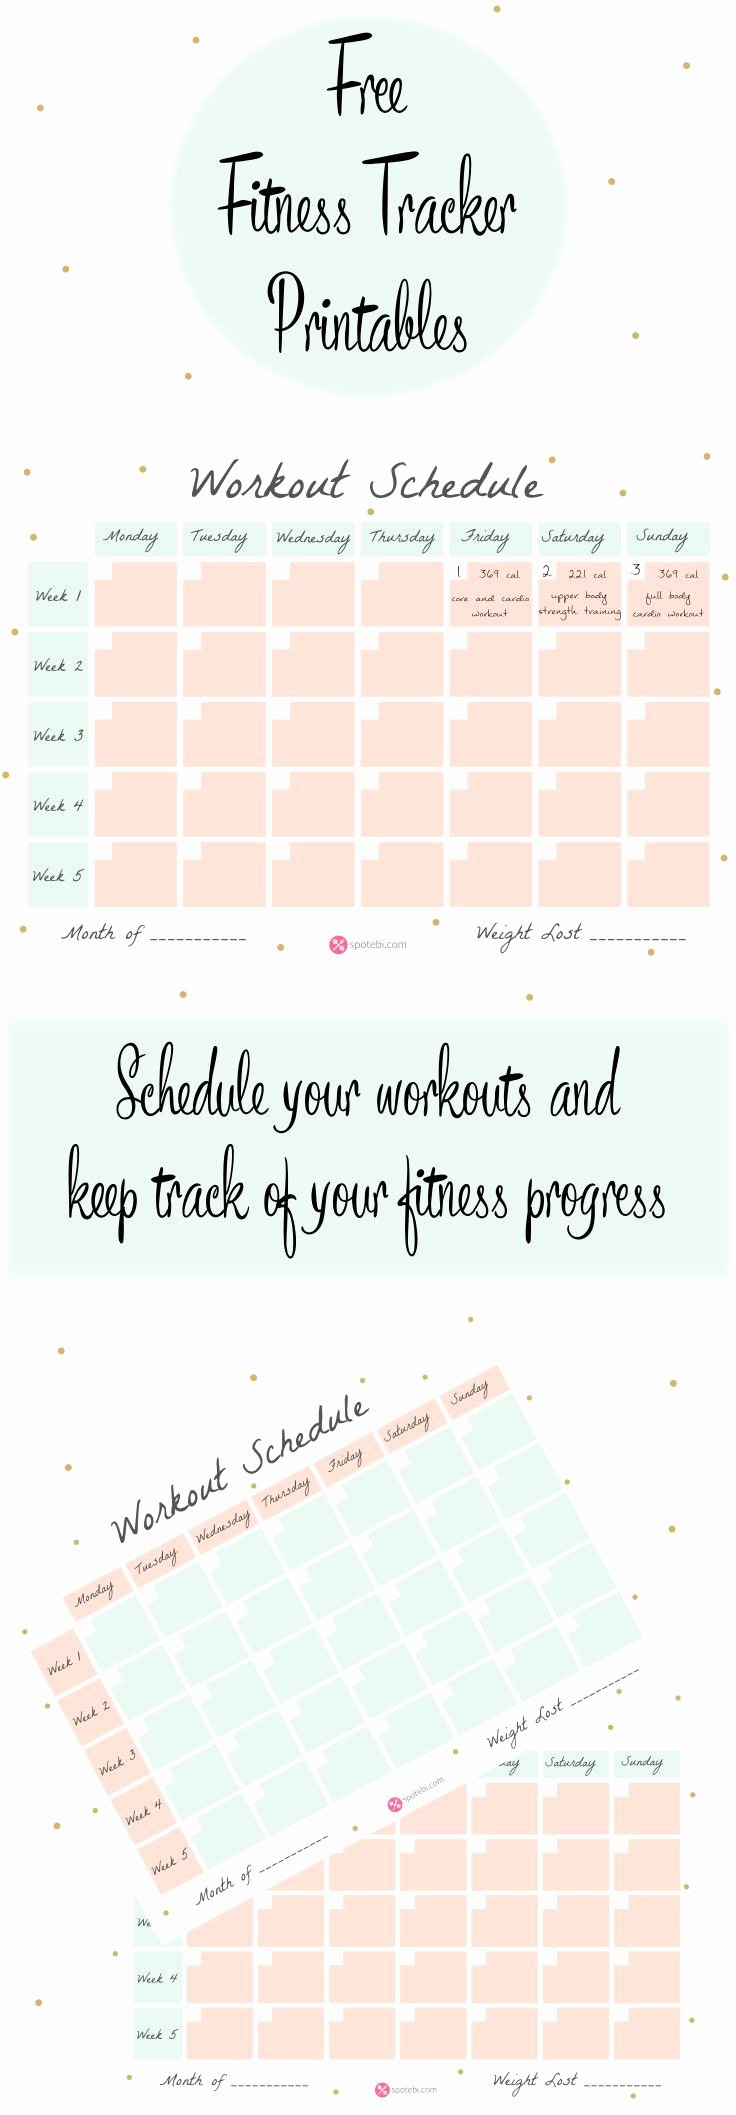 Work Out Schedule Template New Workout Schedule Template